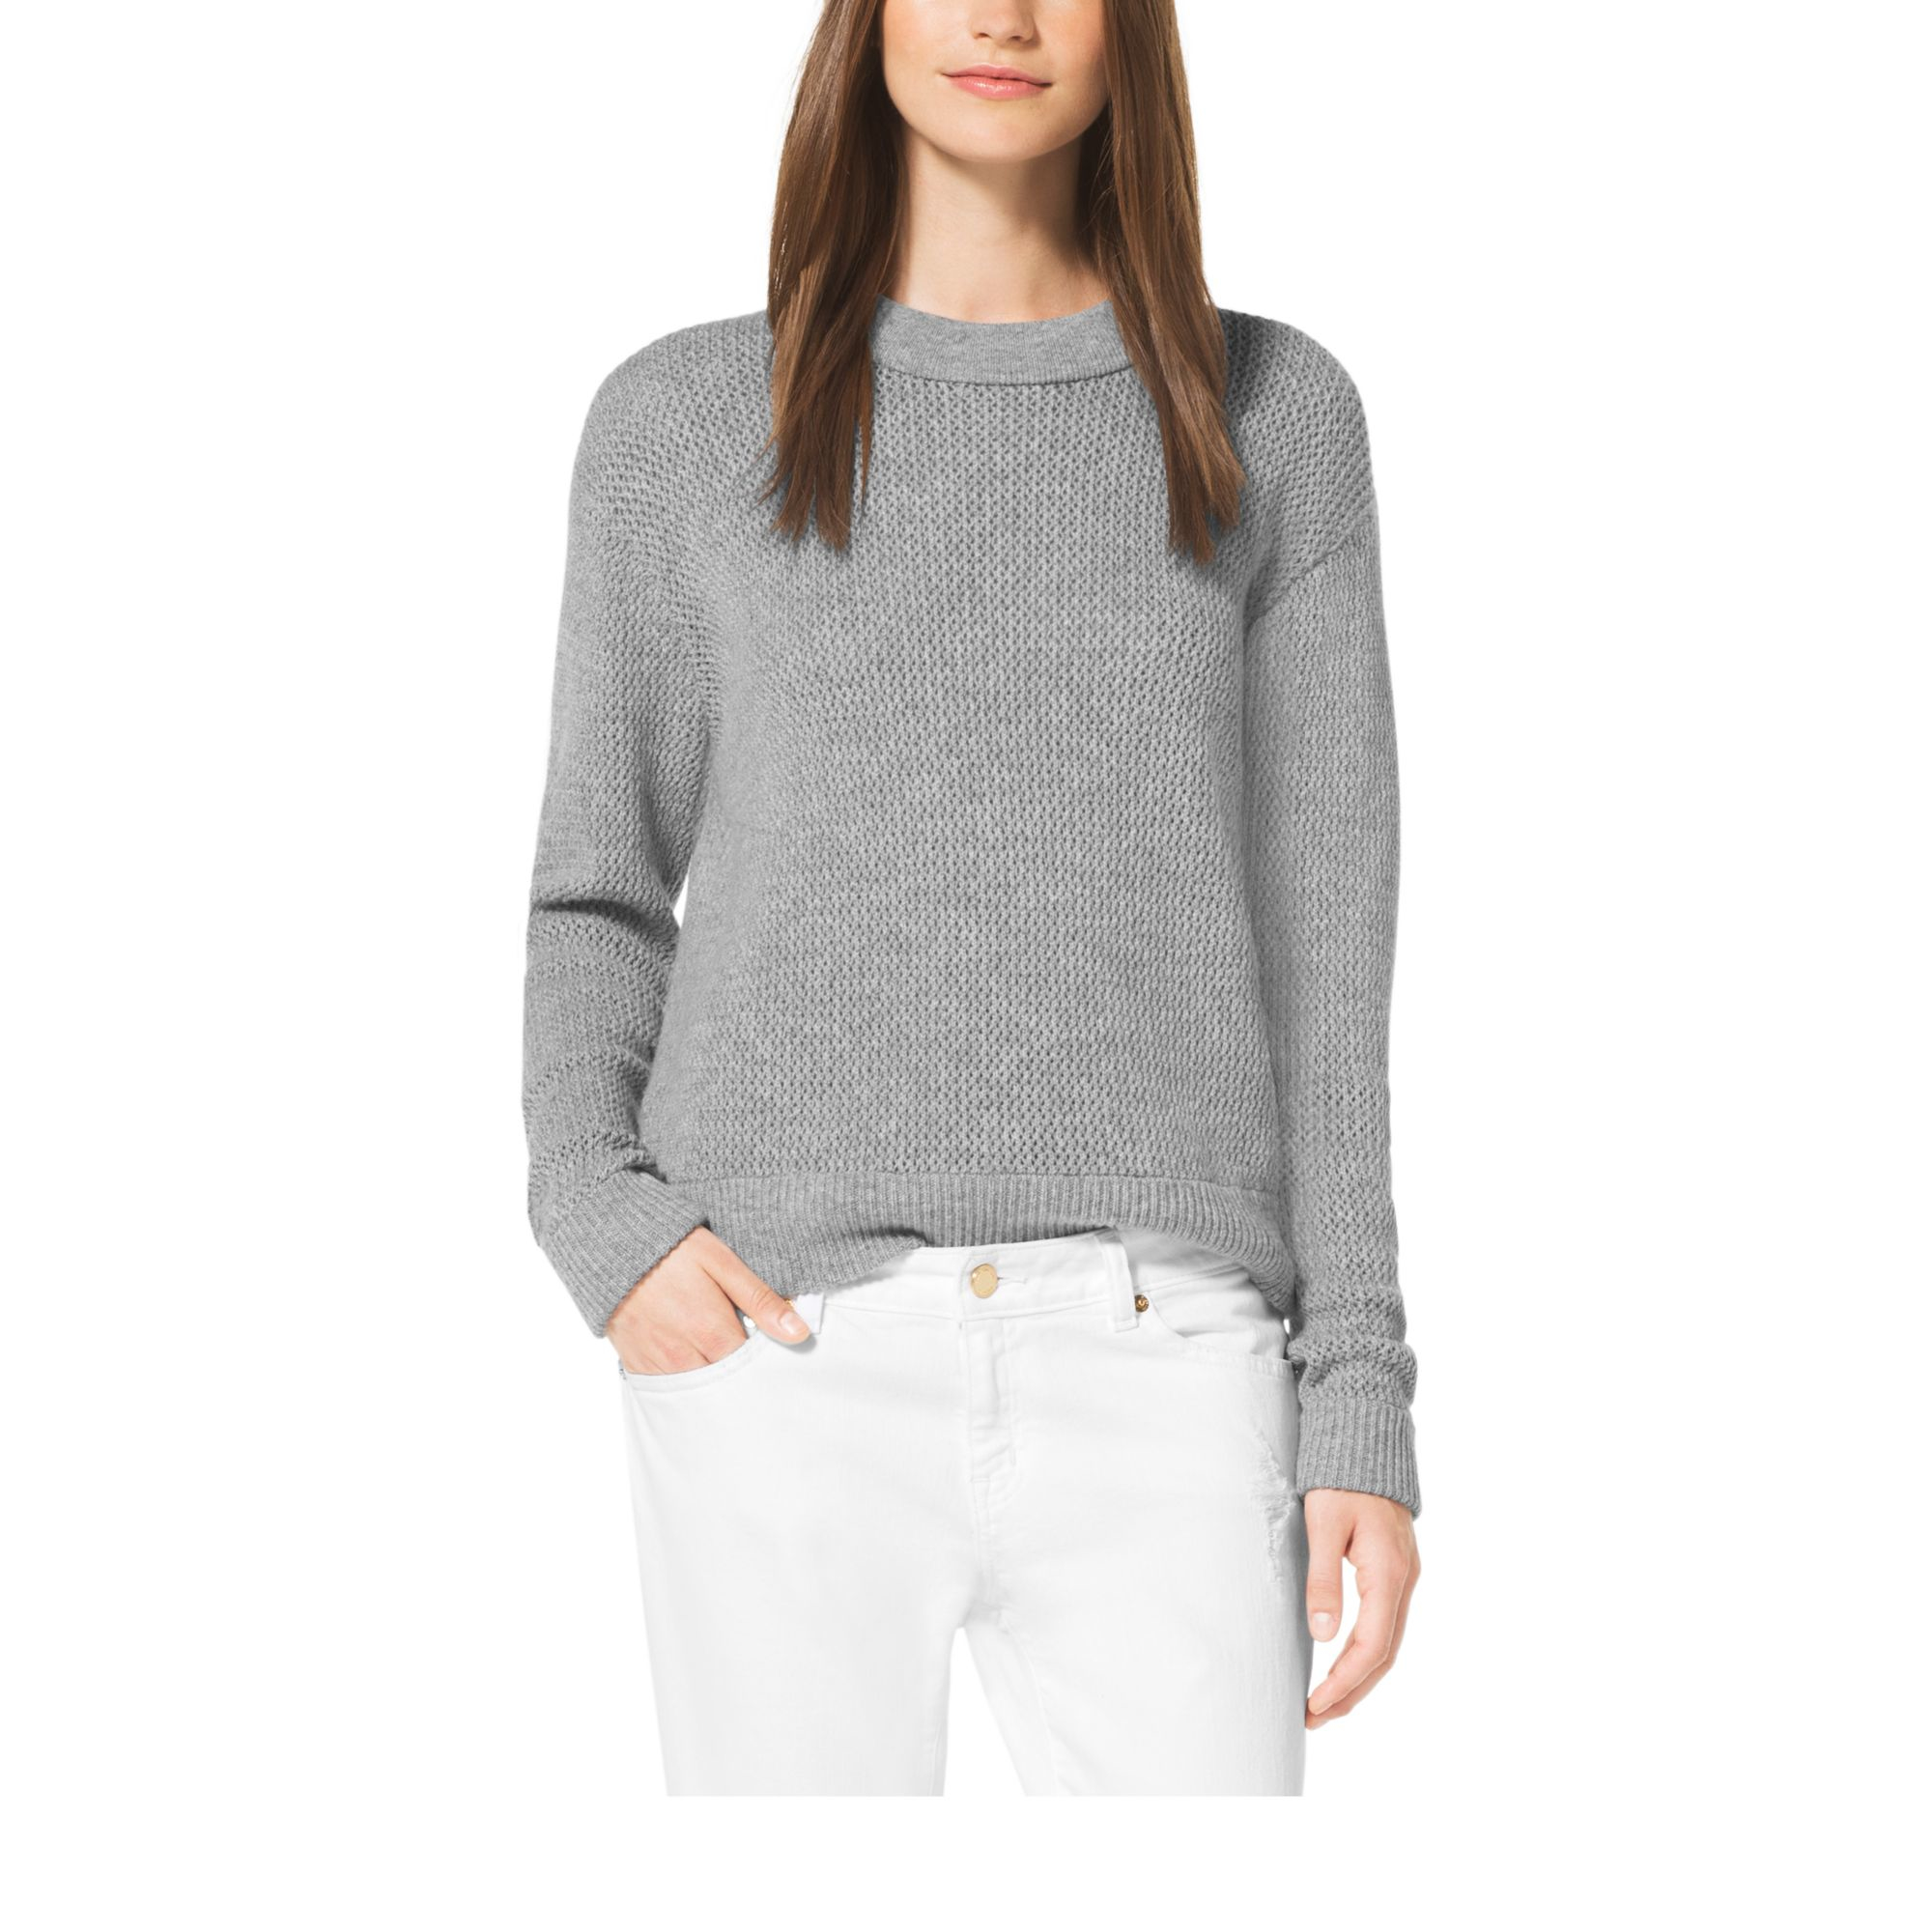 52ee154b13db Michael Kors Wool And Cashmere Sweater in Gray - Lyst